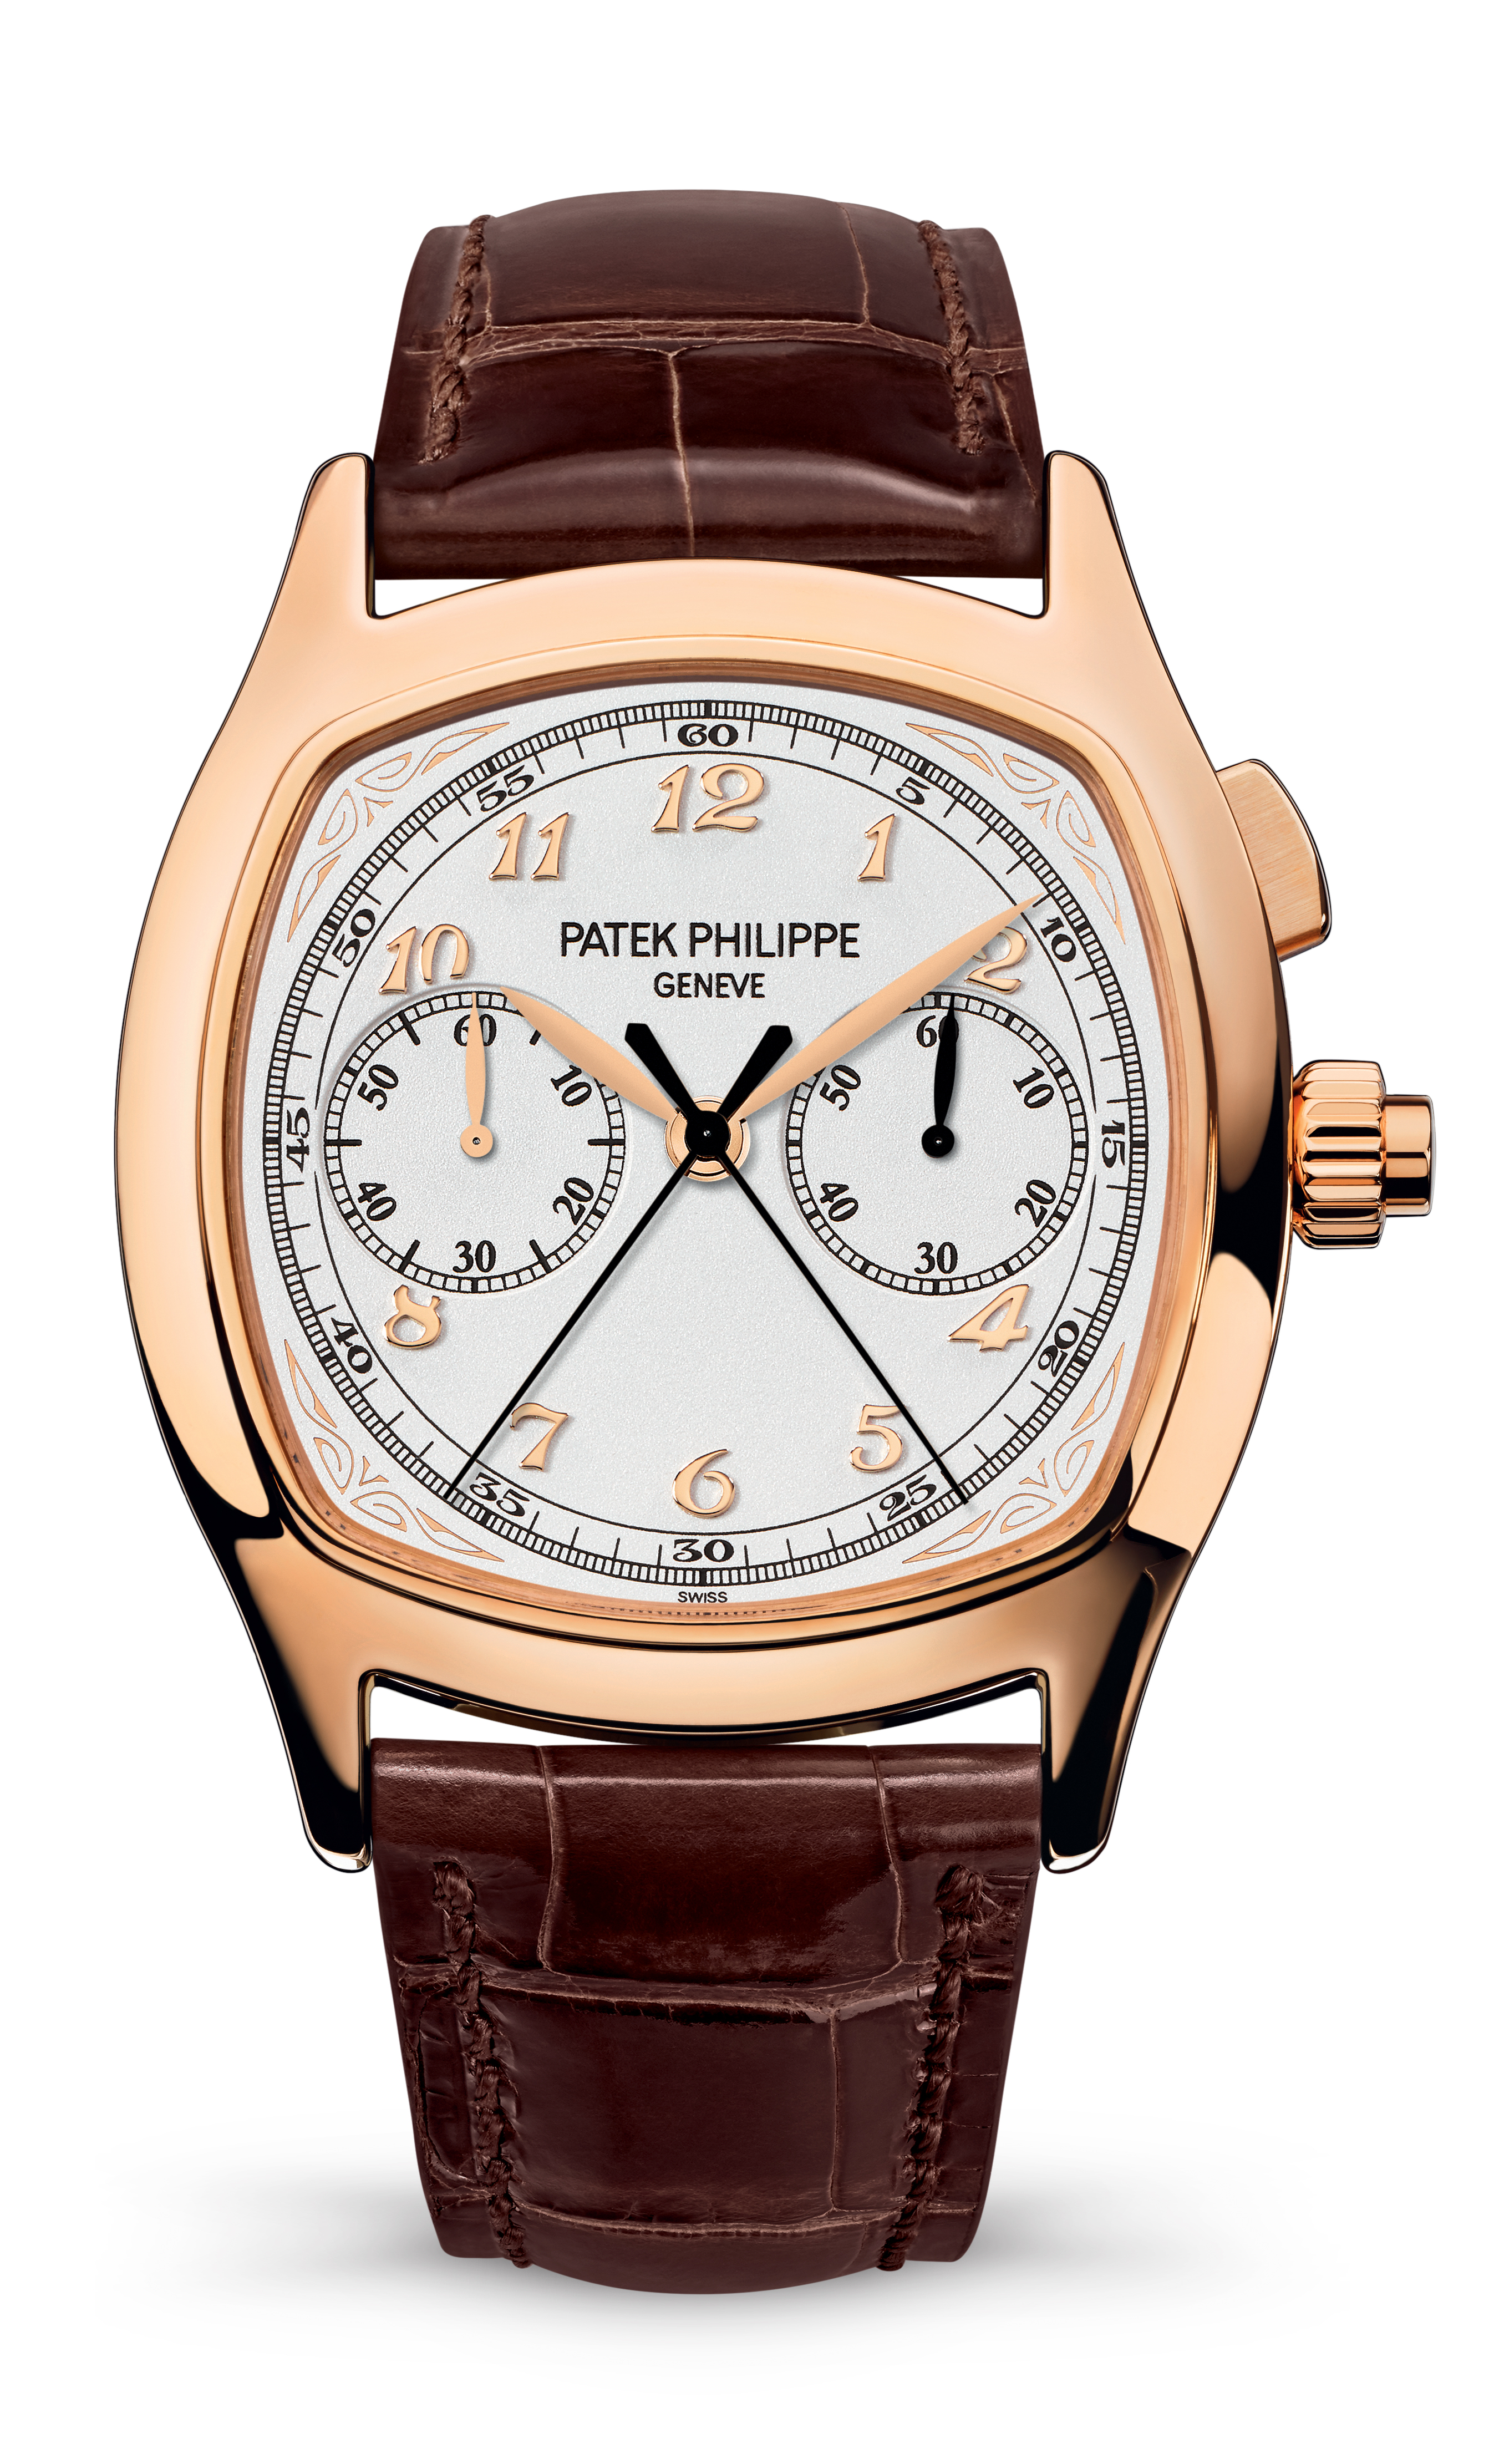 Grand Complication - 5950R-001